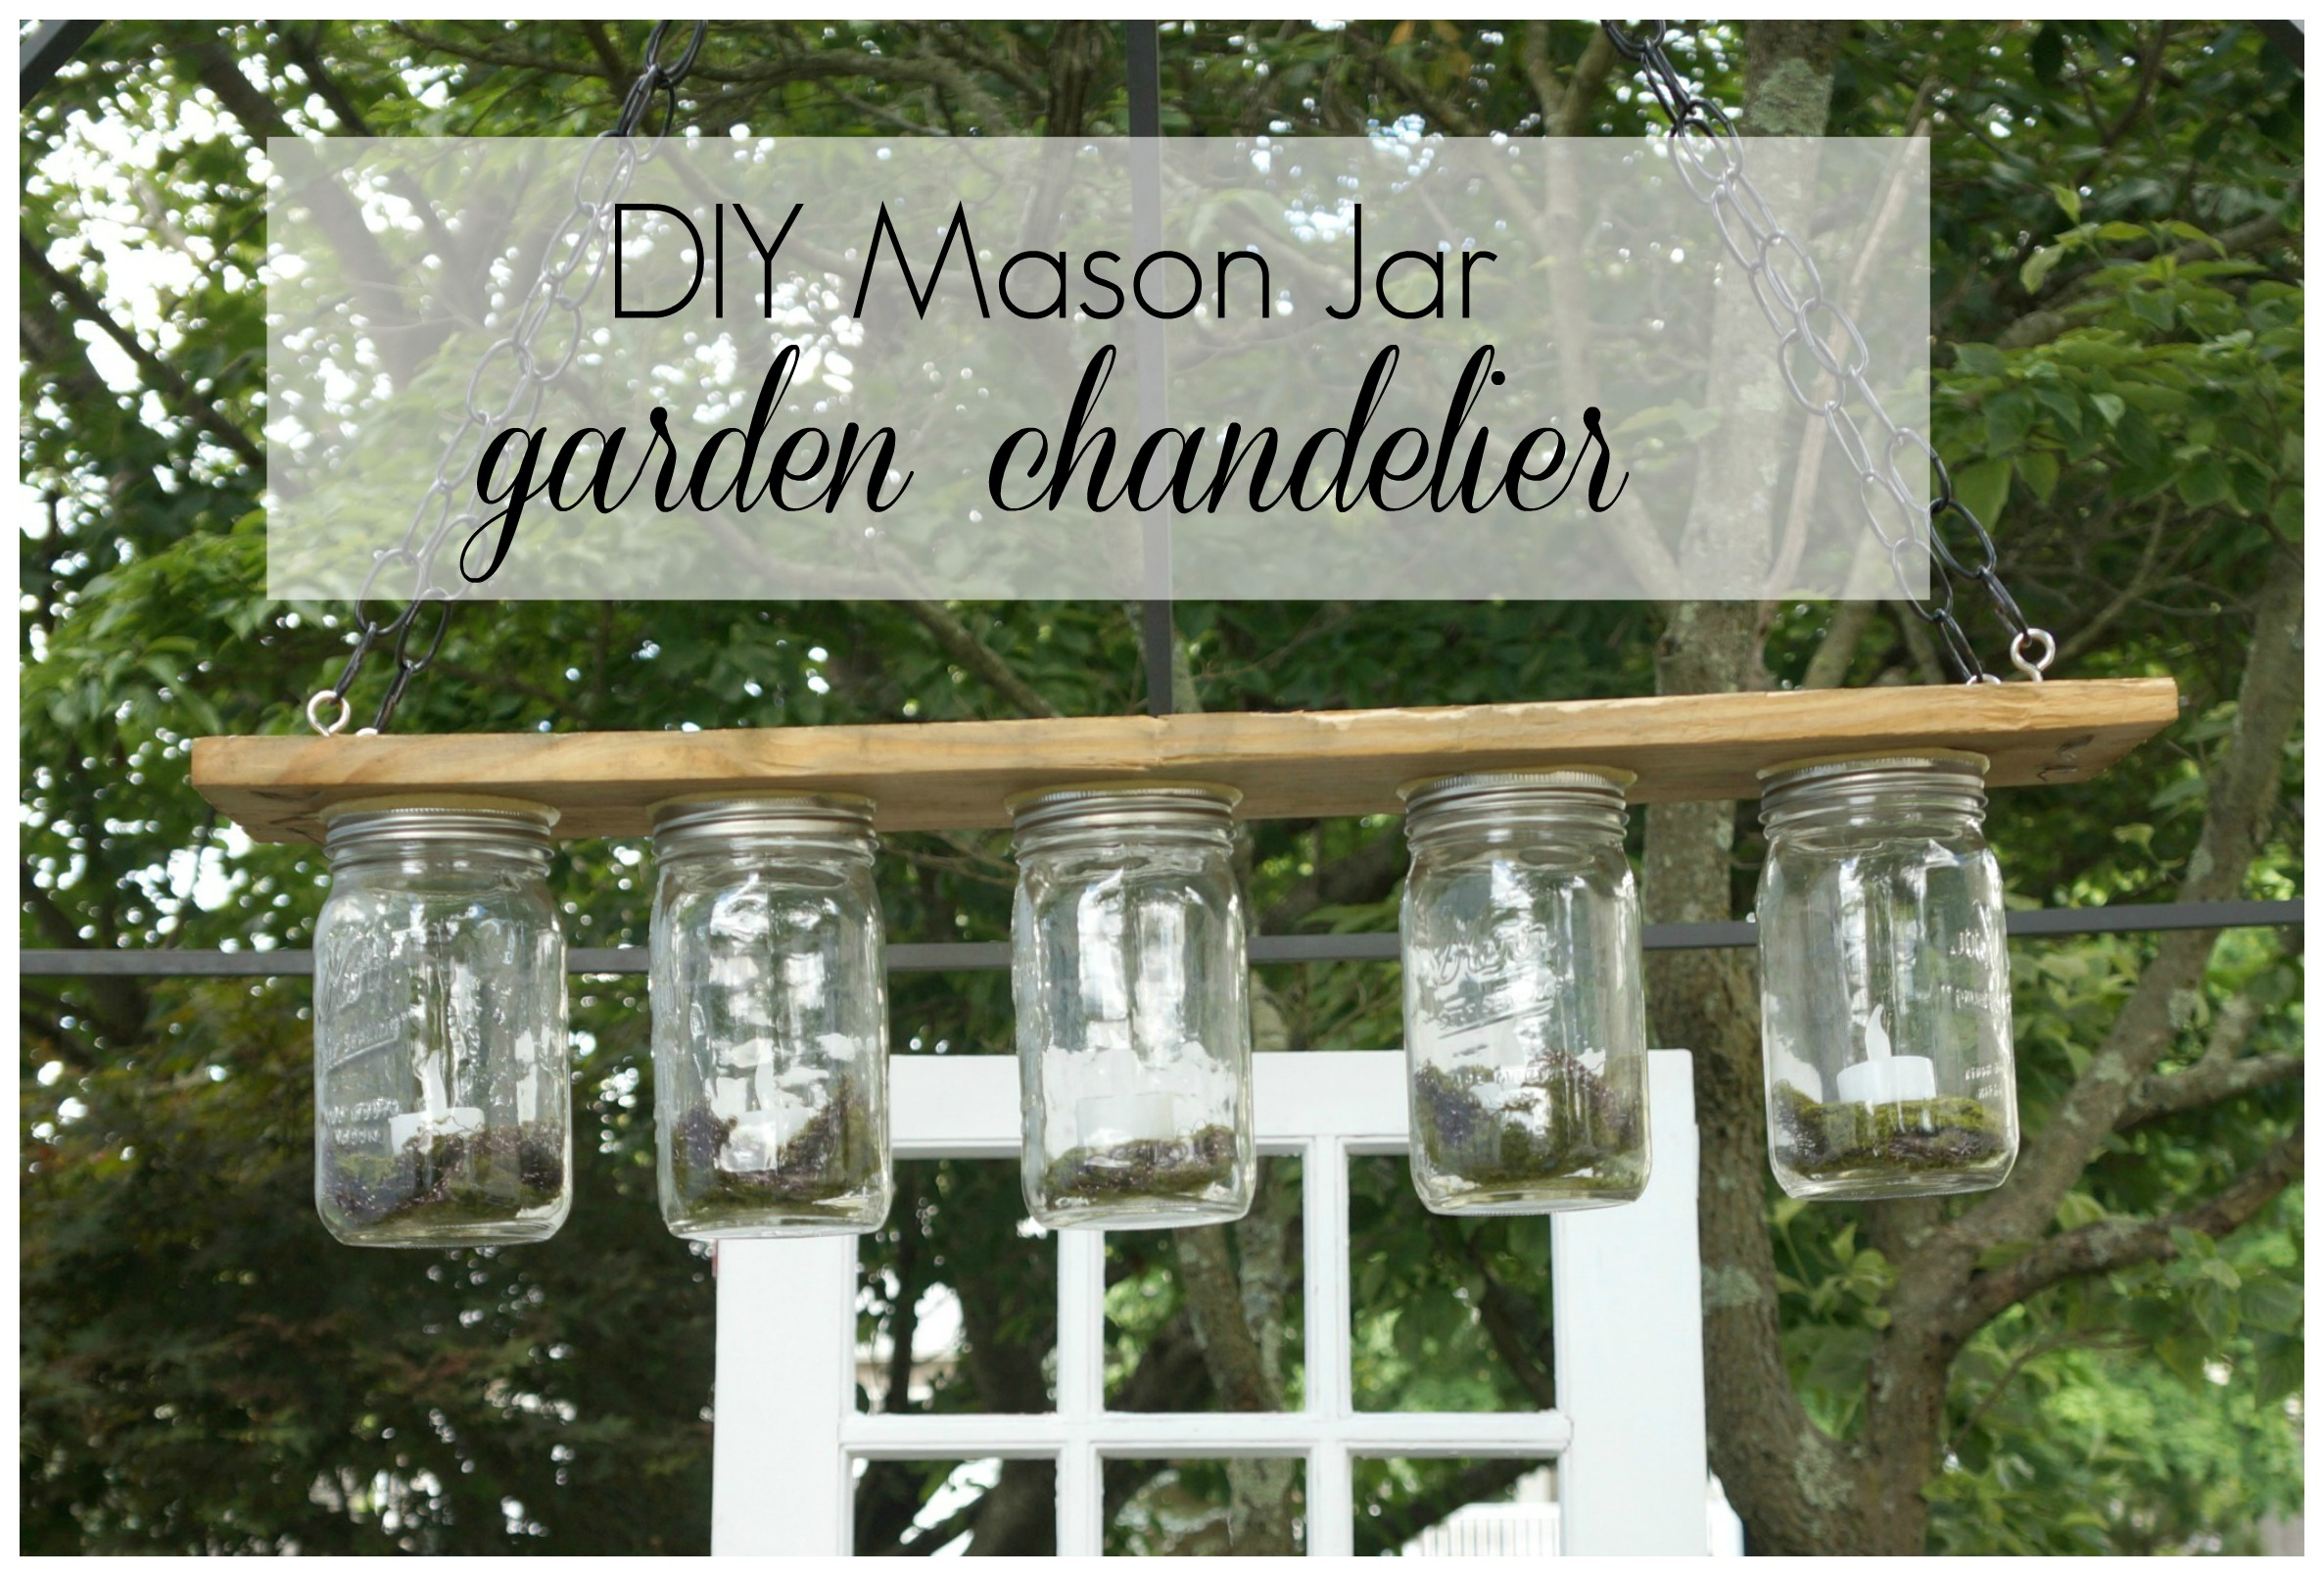 DIY Mason Jar Outdoor Garden Chandelier Seeking Lavendar Lane